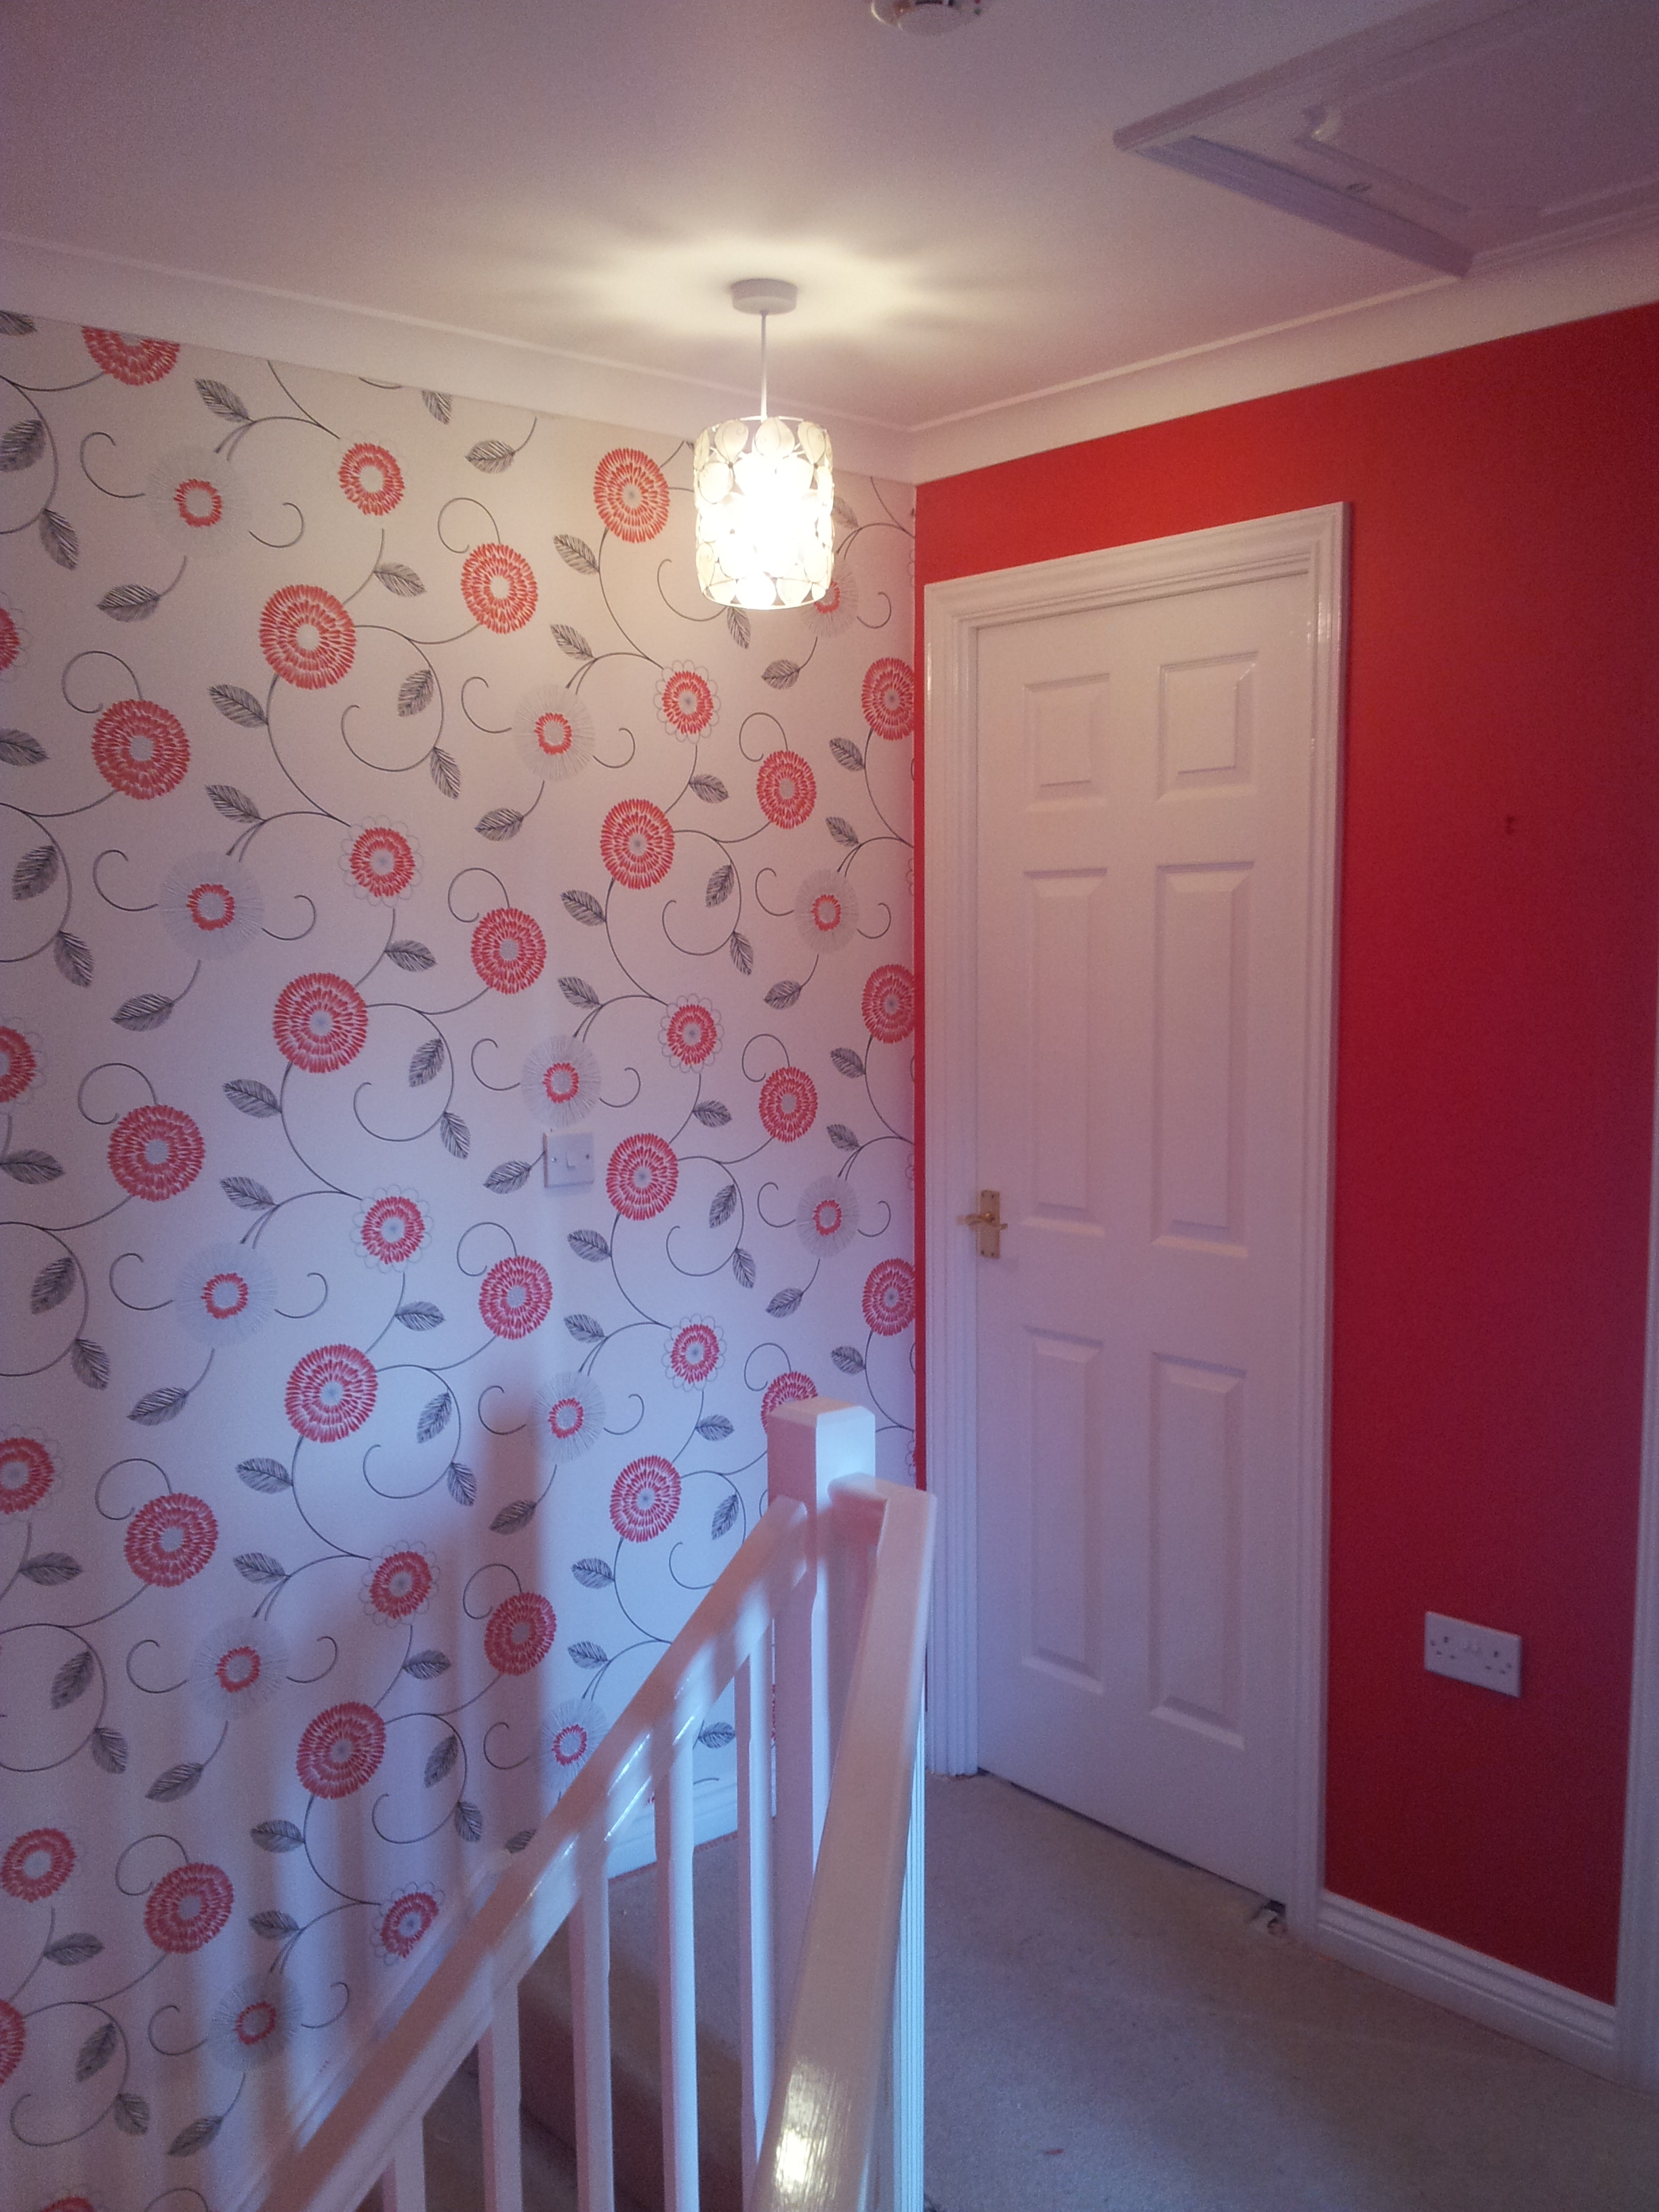 painting and wallpapering completed in Swindon, Wiltshire